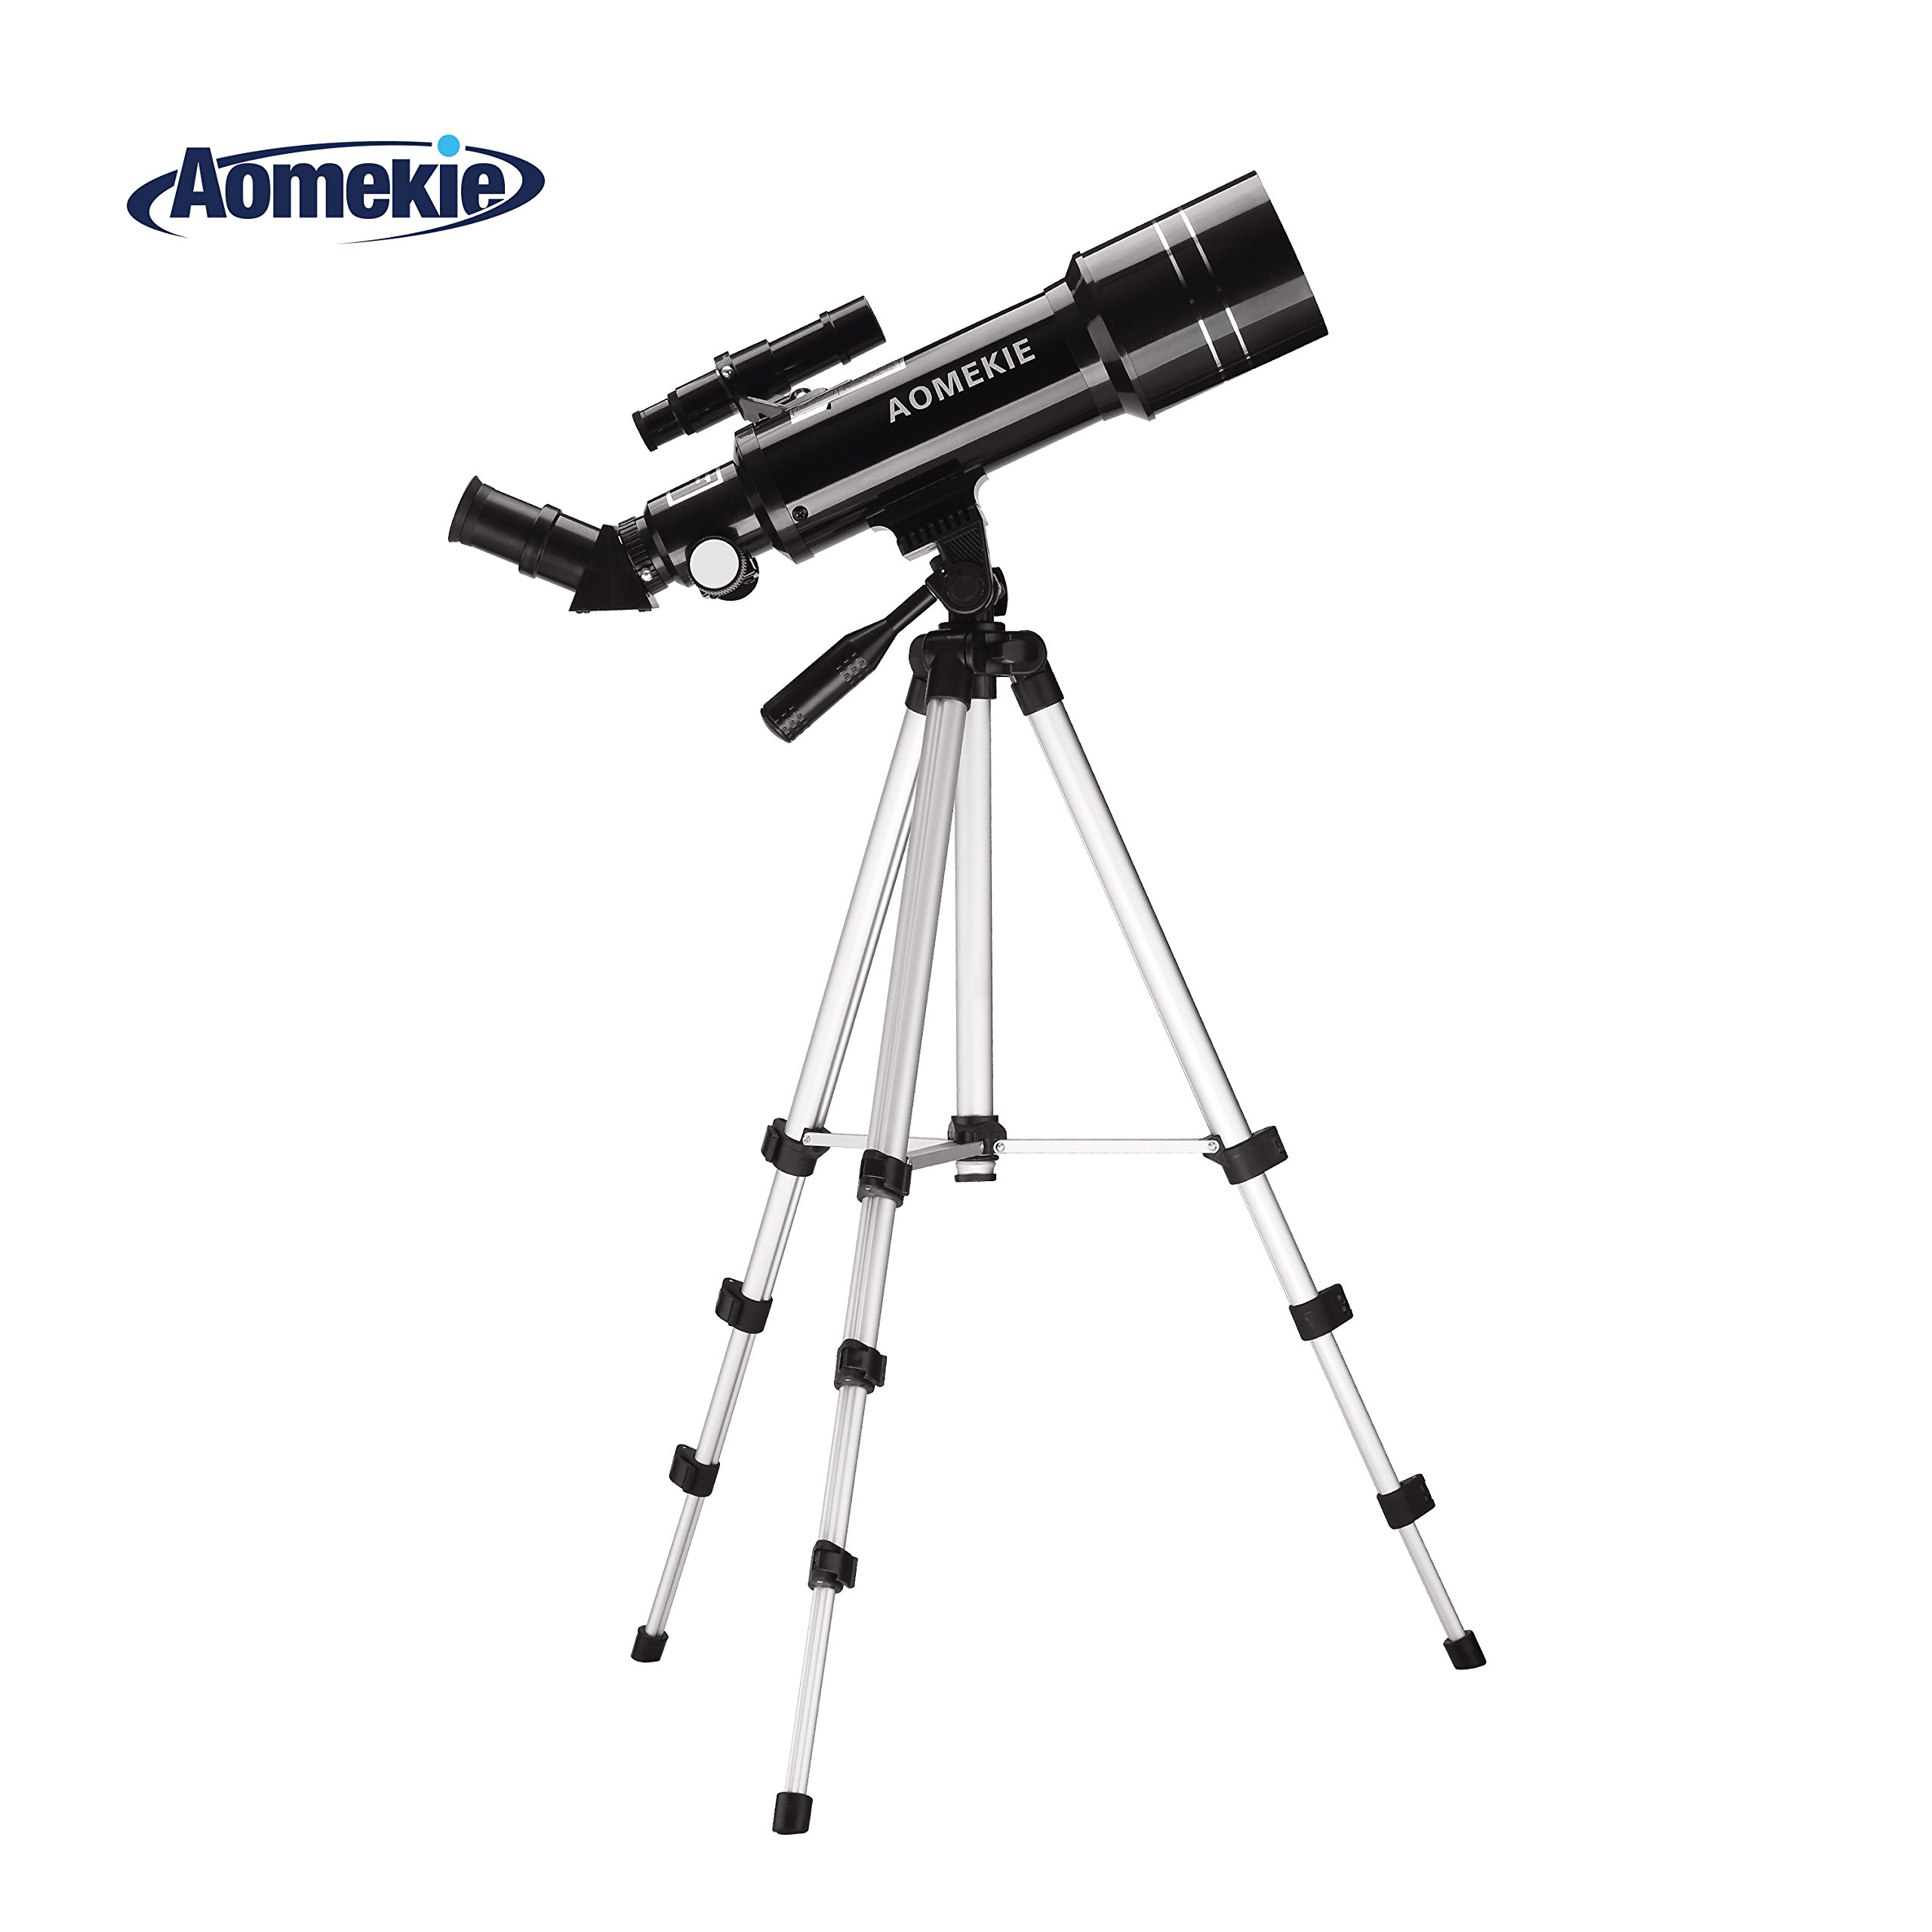 Aomekie Telescope for Adults Kids and Astronomy Beginners 70mm Travel Scope Refractor Telescopes with Adjustable Tripod